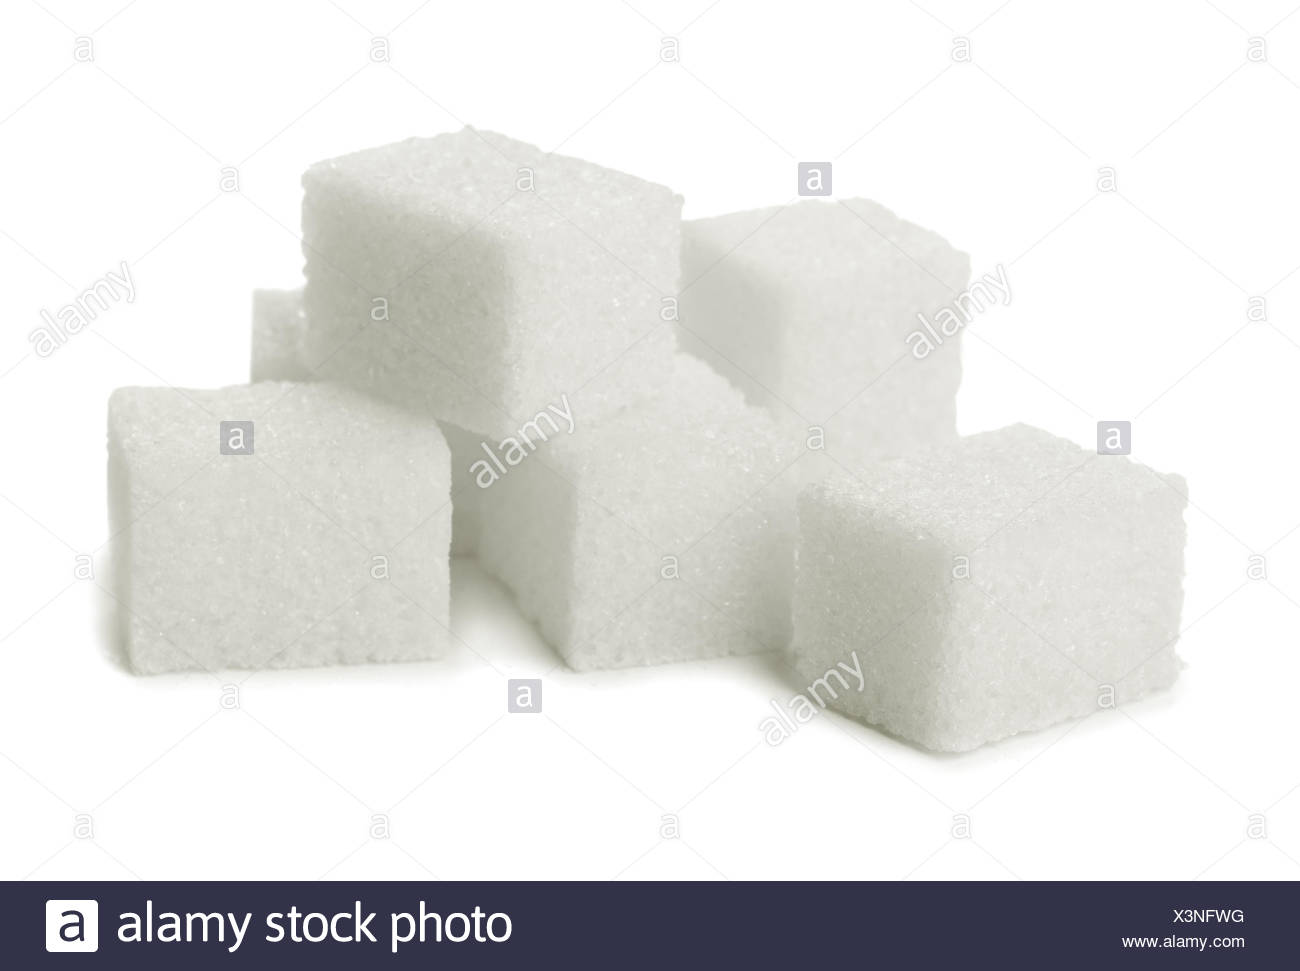 Sugar - Stock Image